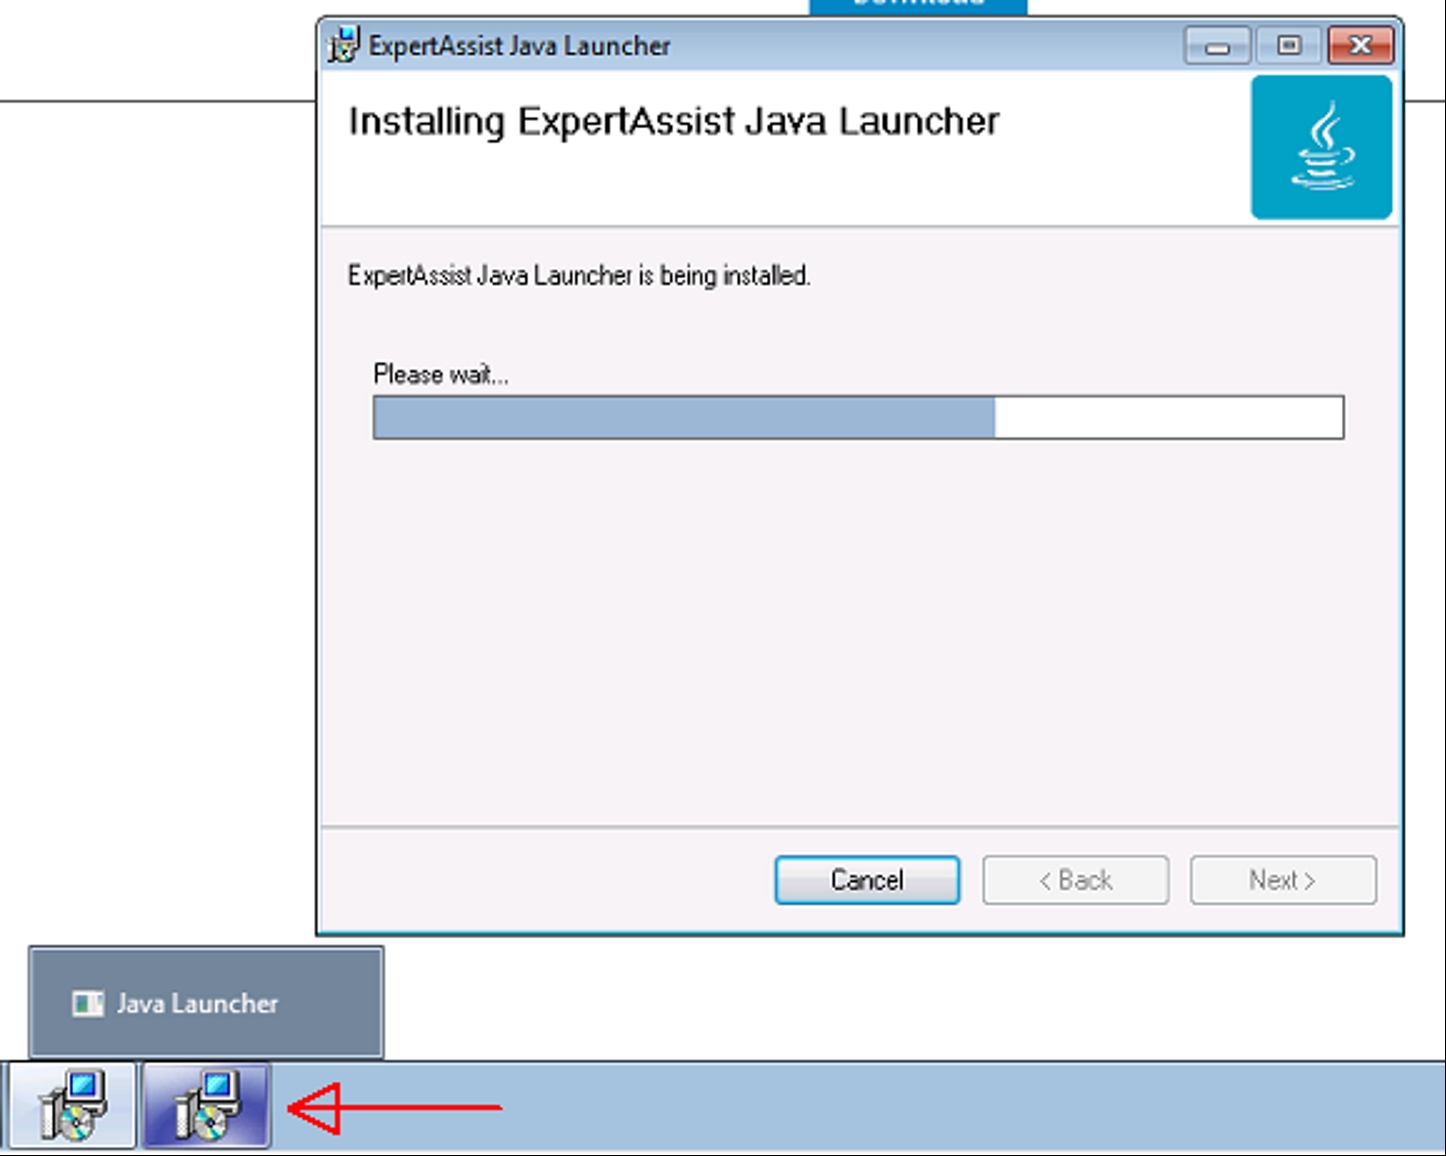 Open JDK for Expert Assist Java Launcher is not getting installed